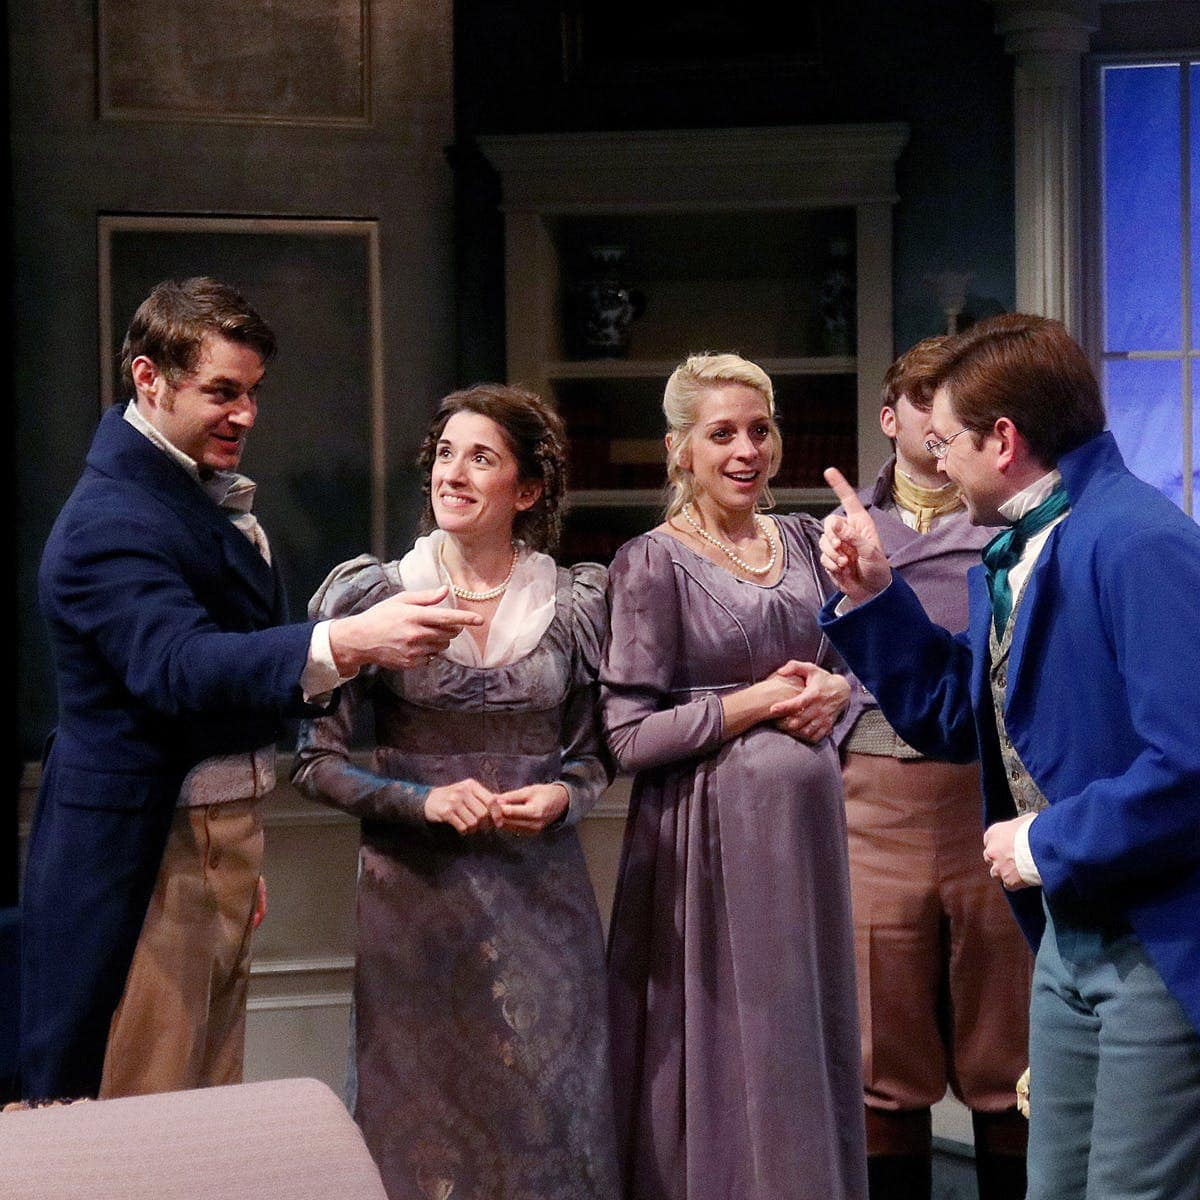 Main Street Theatre presents Miss Bennet: Christmas at Pemberley